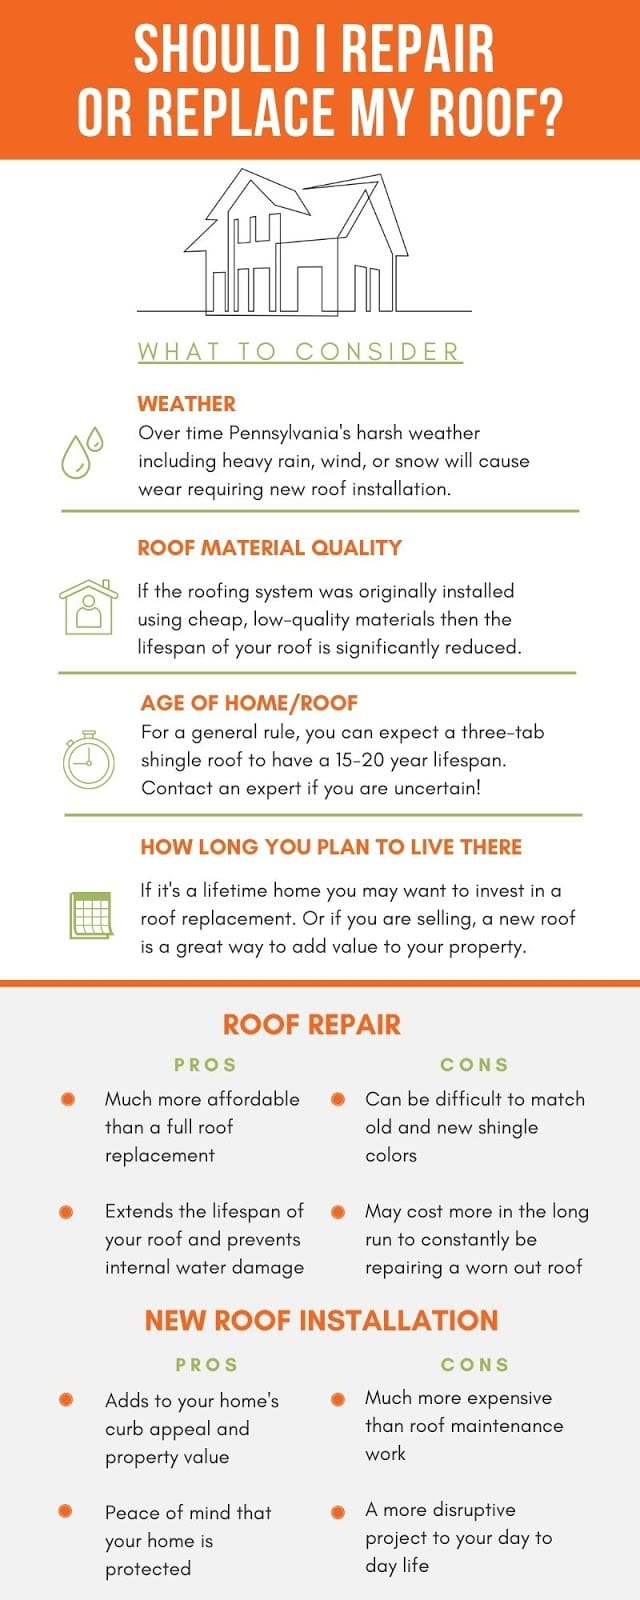 dreamworx-repair-or-replace-a-roof-infographic